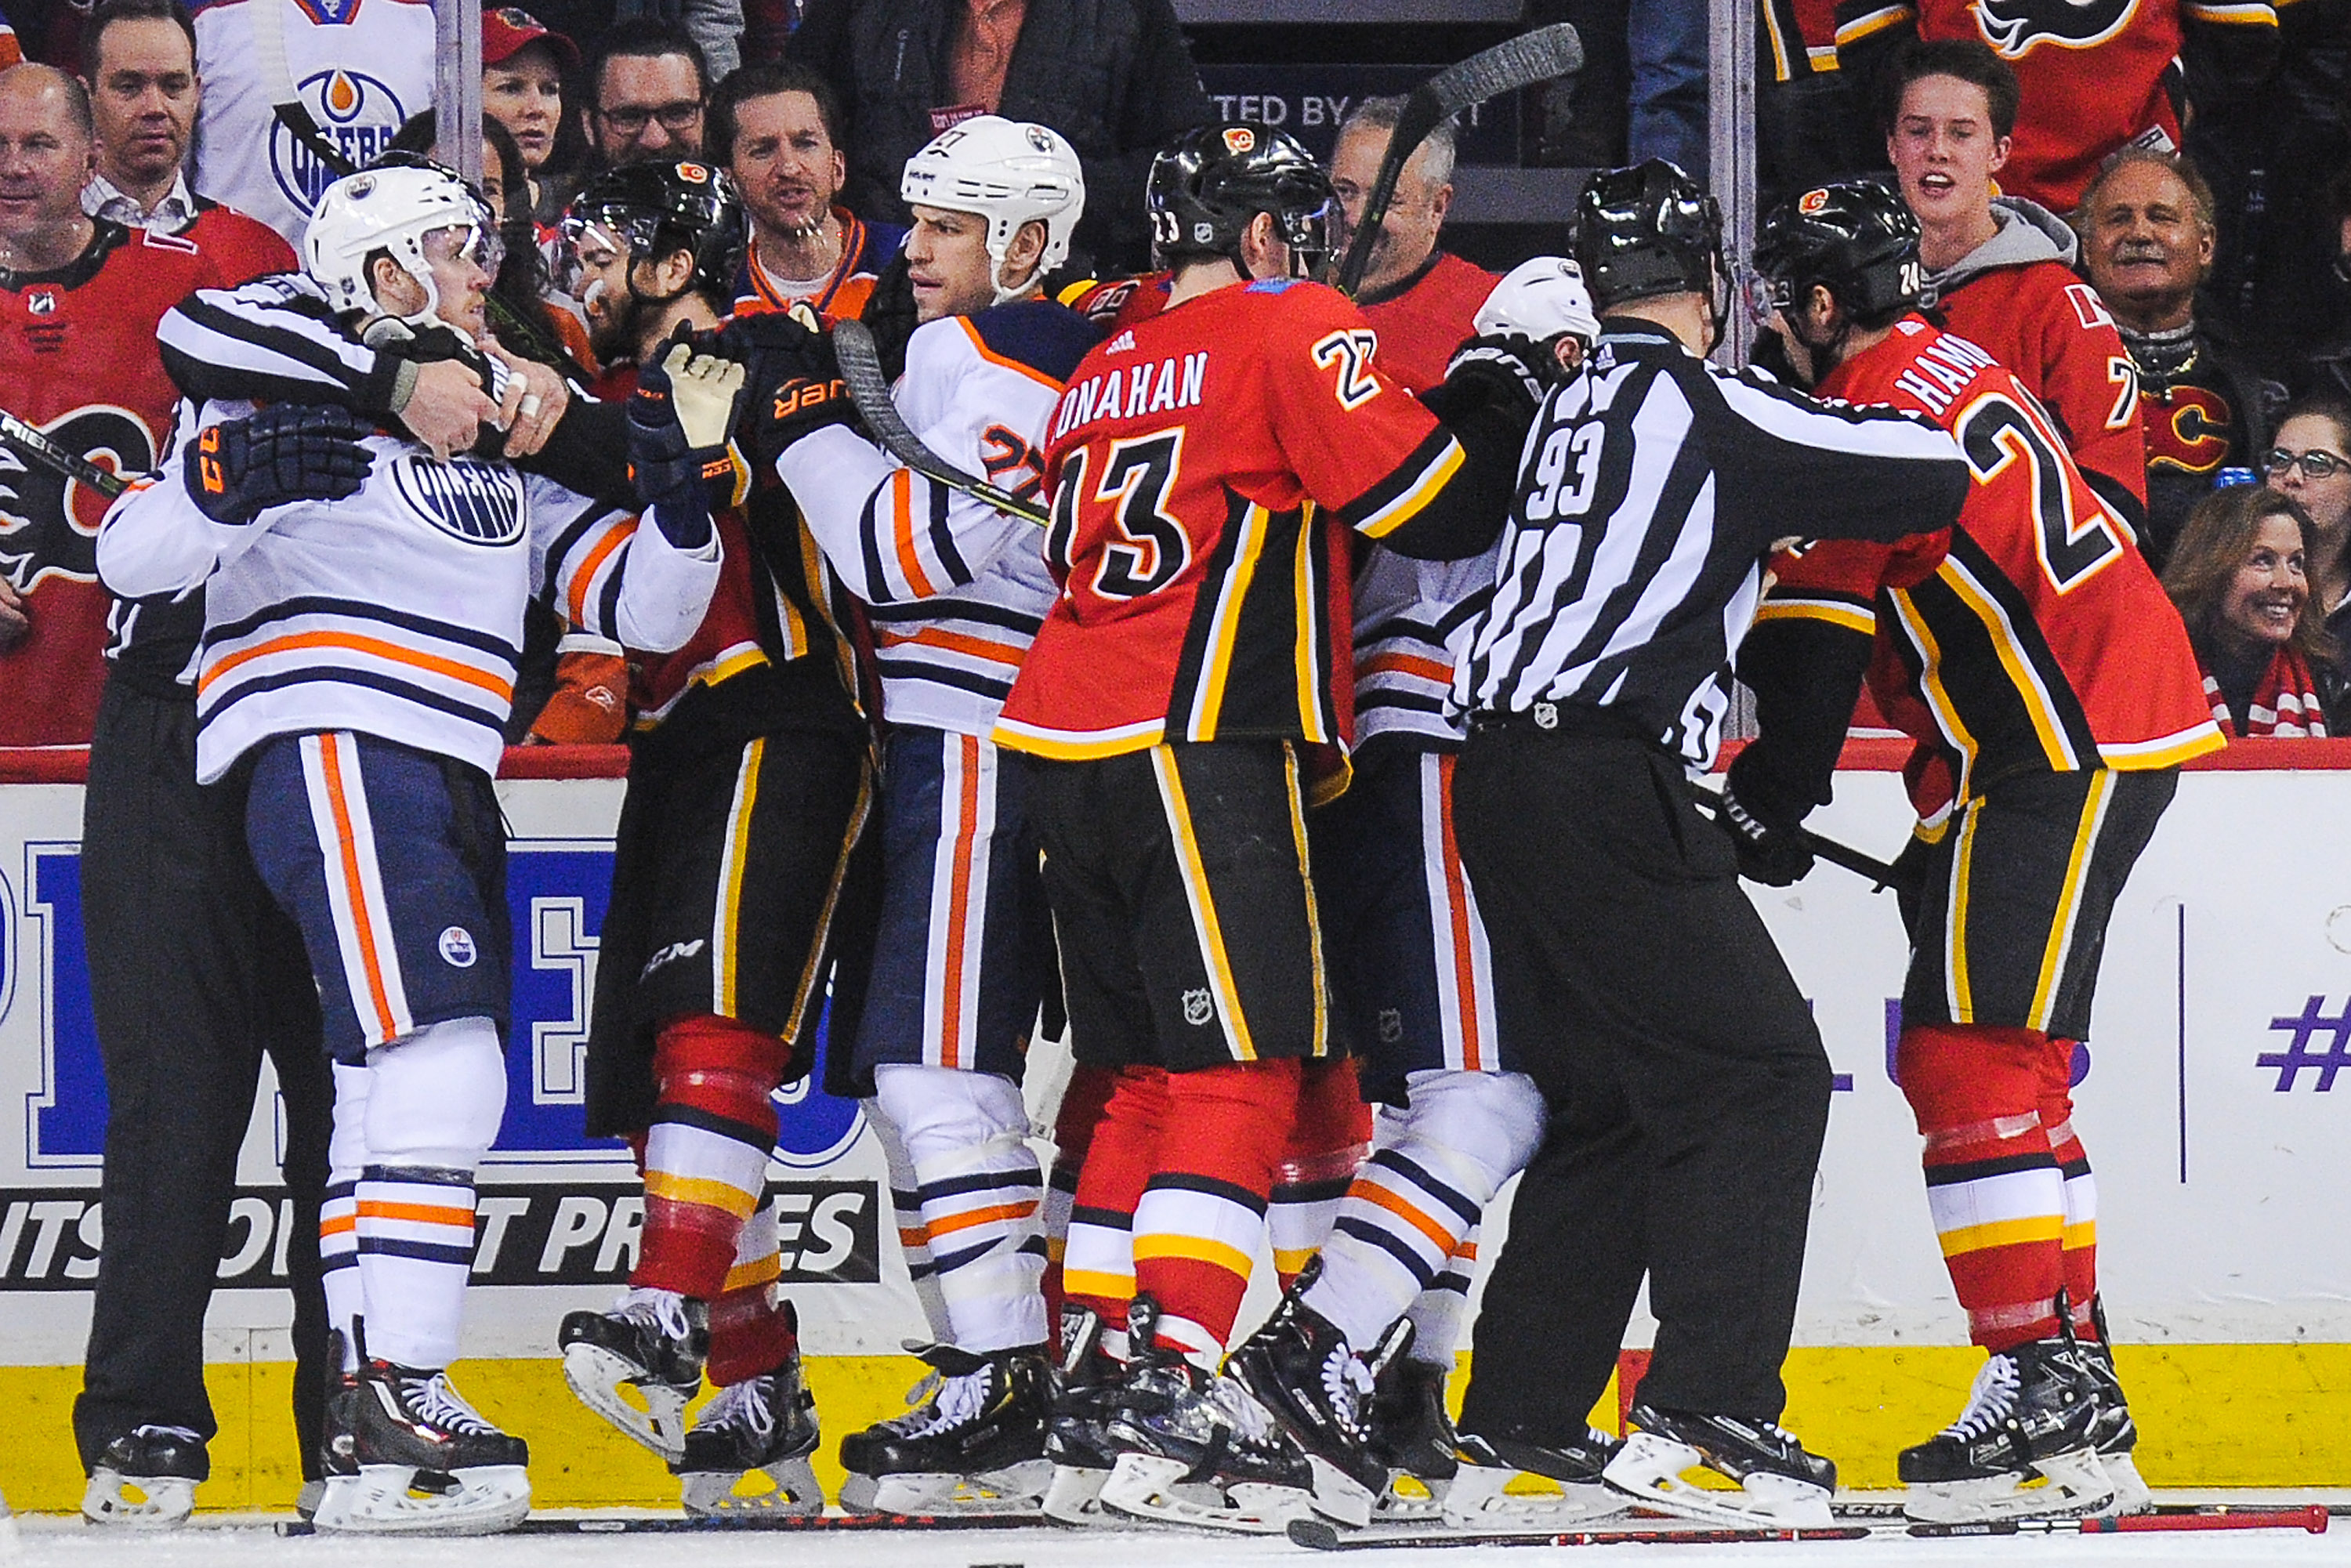 CALGARY, AB - MARCH 13: The Calgary Flames mix it up after the whistle with the Edmonton Oilers during an NHL game at Scotiabank Saddledome on March 13, 2018 in Calgary, Alberta, Canada.